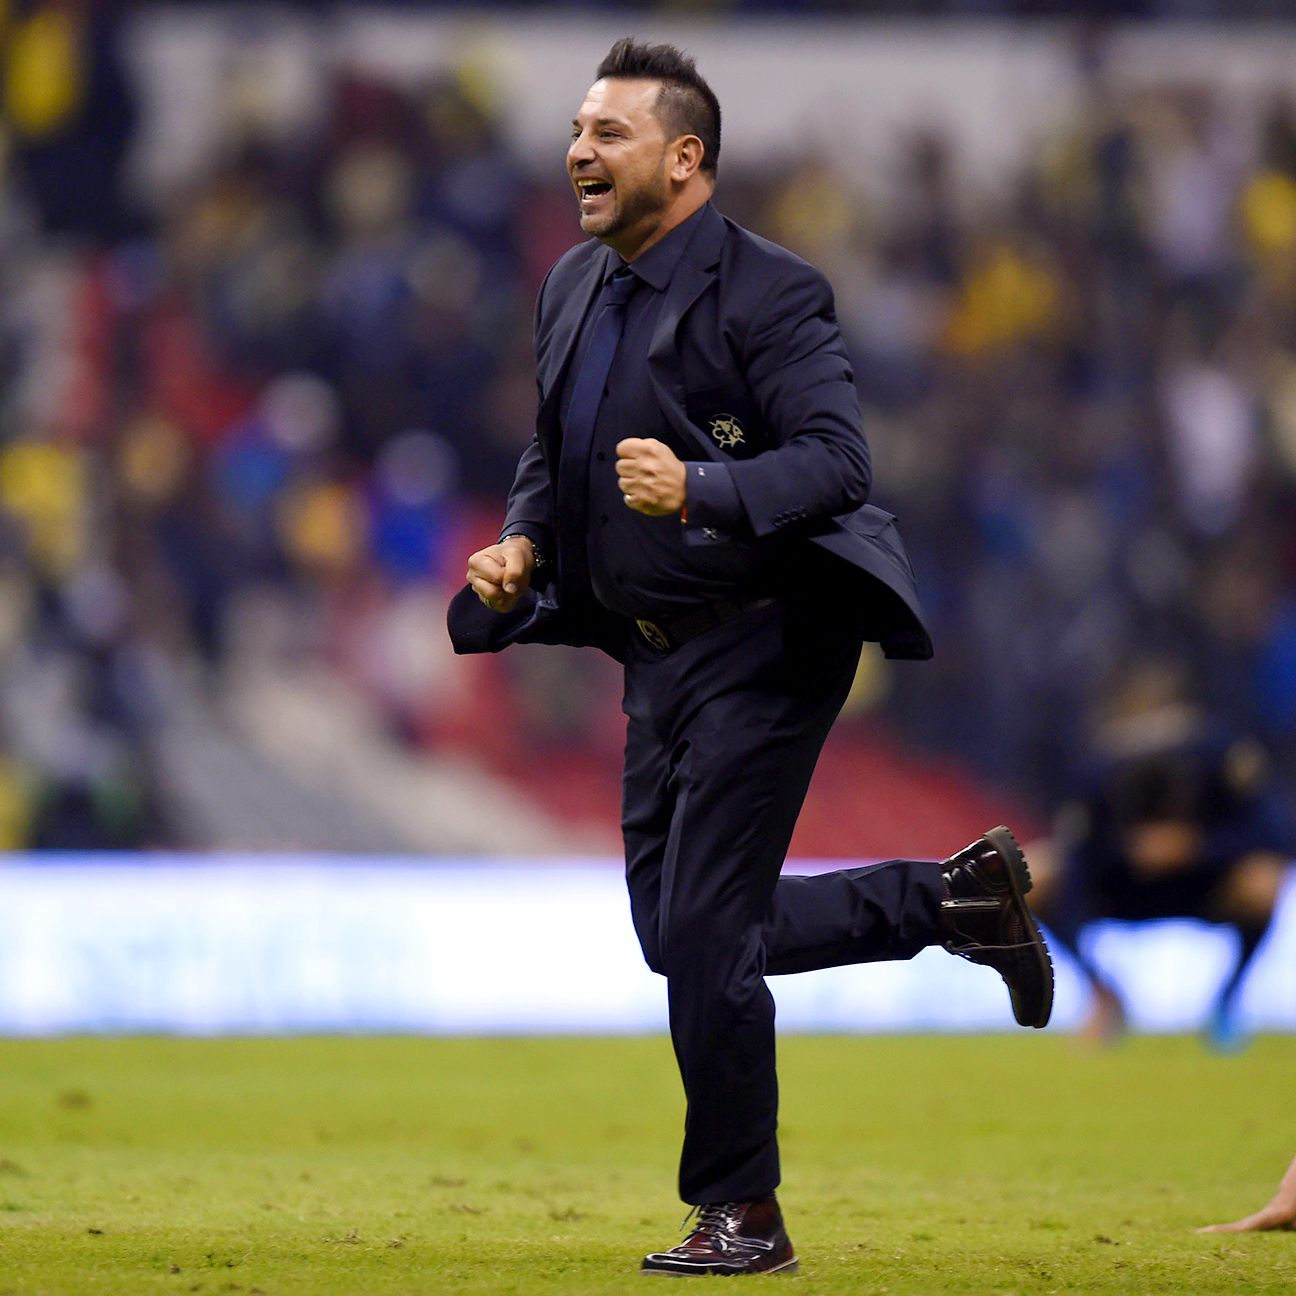 New Monterrey manager Antonio Mohamed has guided his previous two Liga MX clubs, Tijuana and Club America, to league titles.